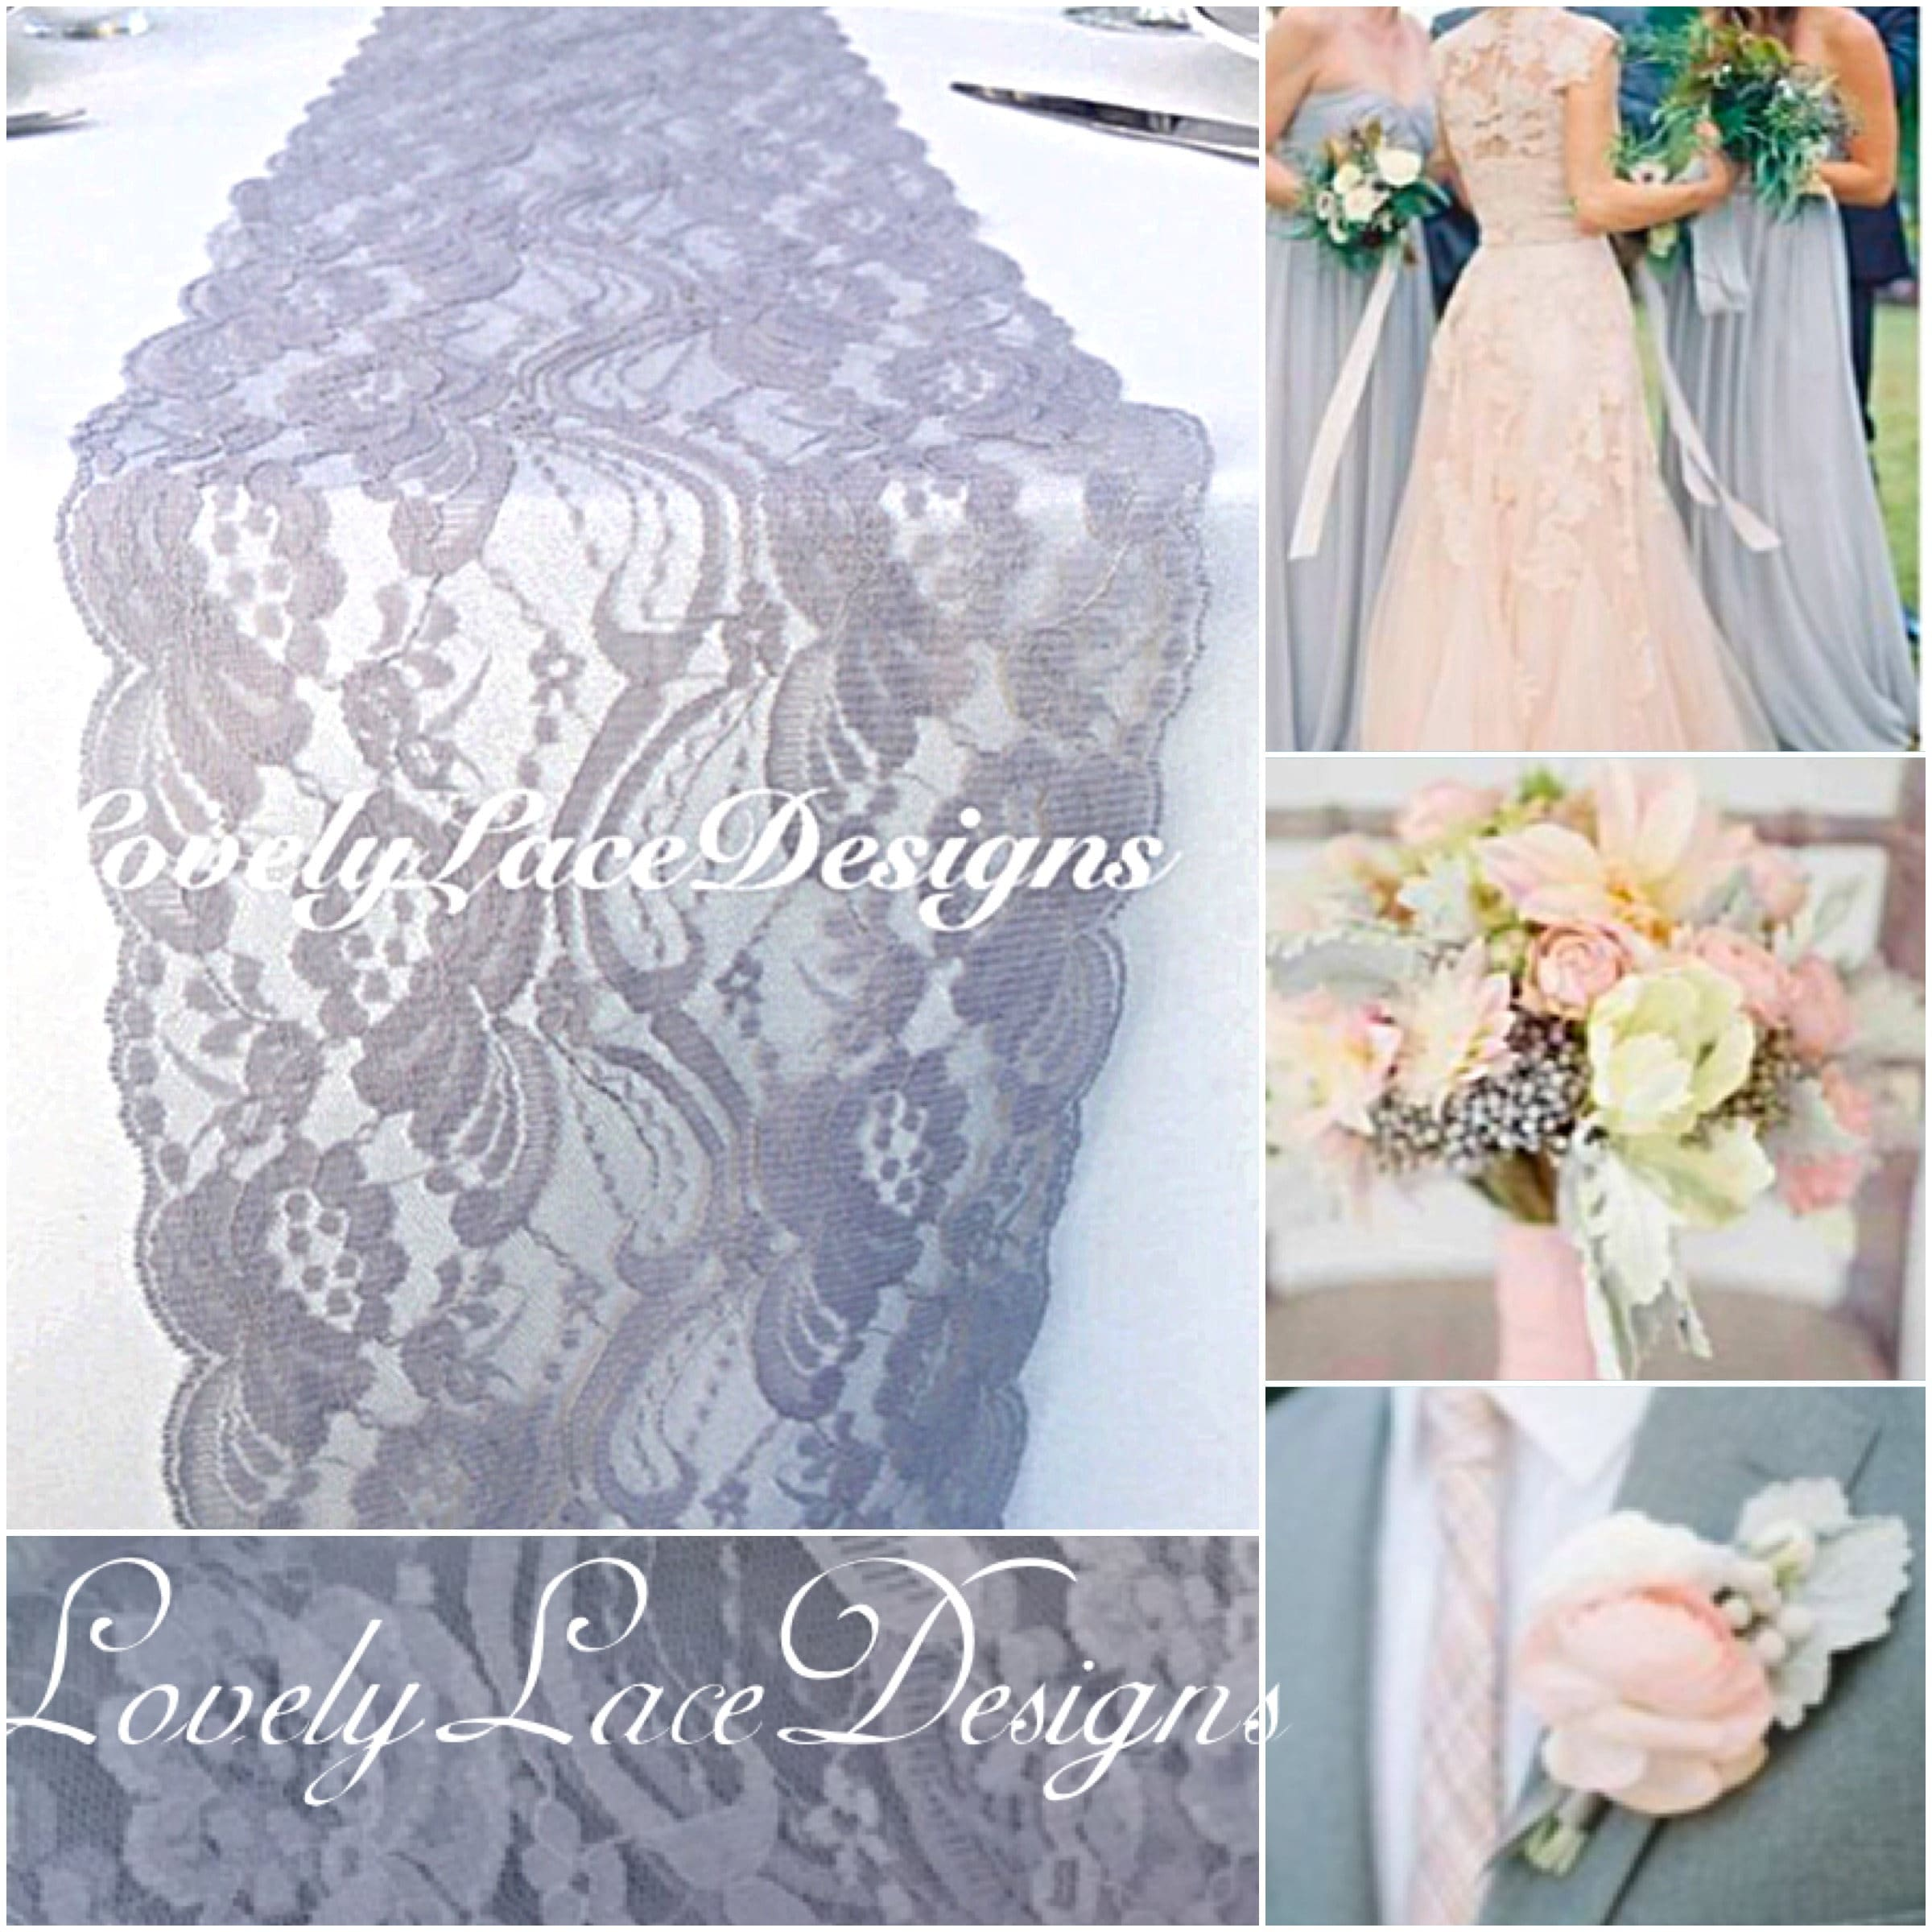 GRAY/SILVER Weddings! Lace Table Runner, 3ft-10ft long x 7wide ...